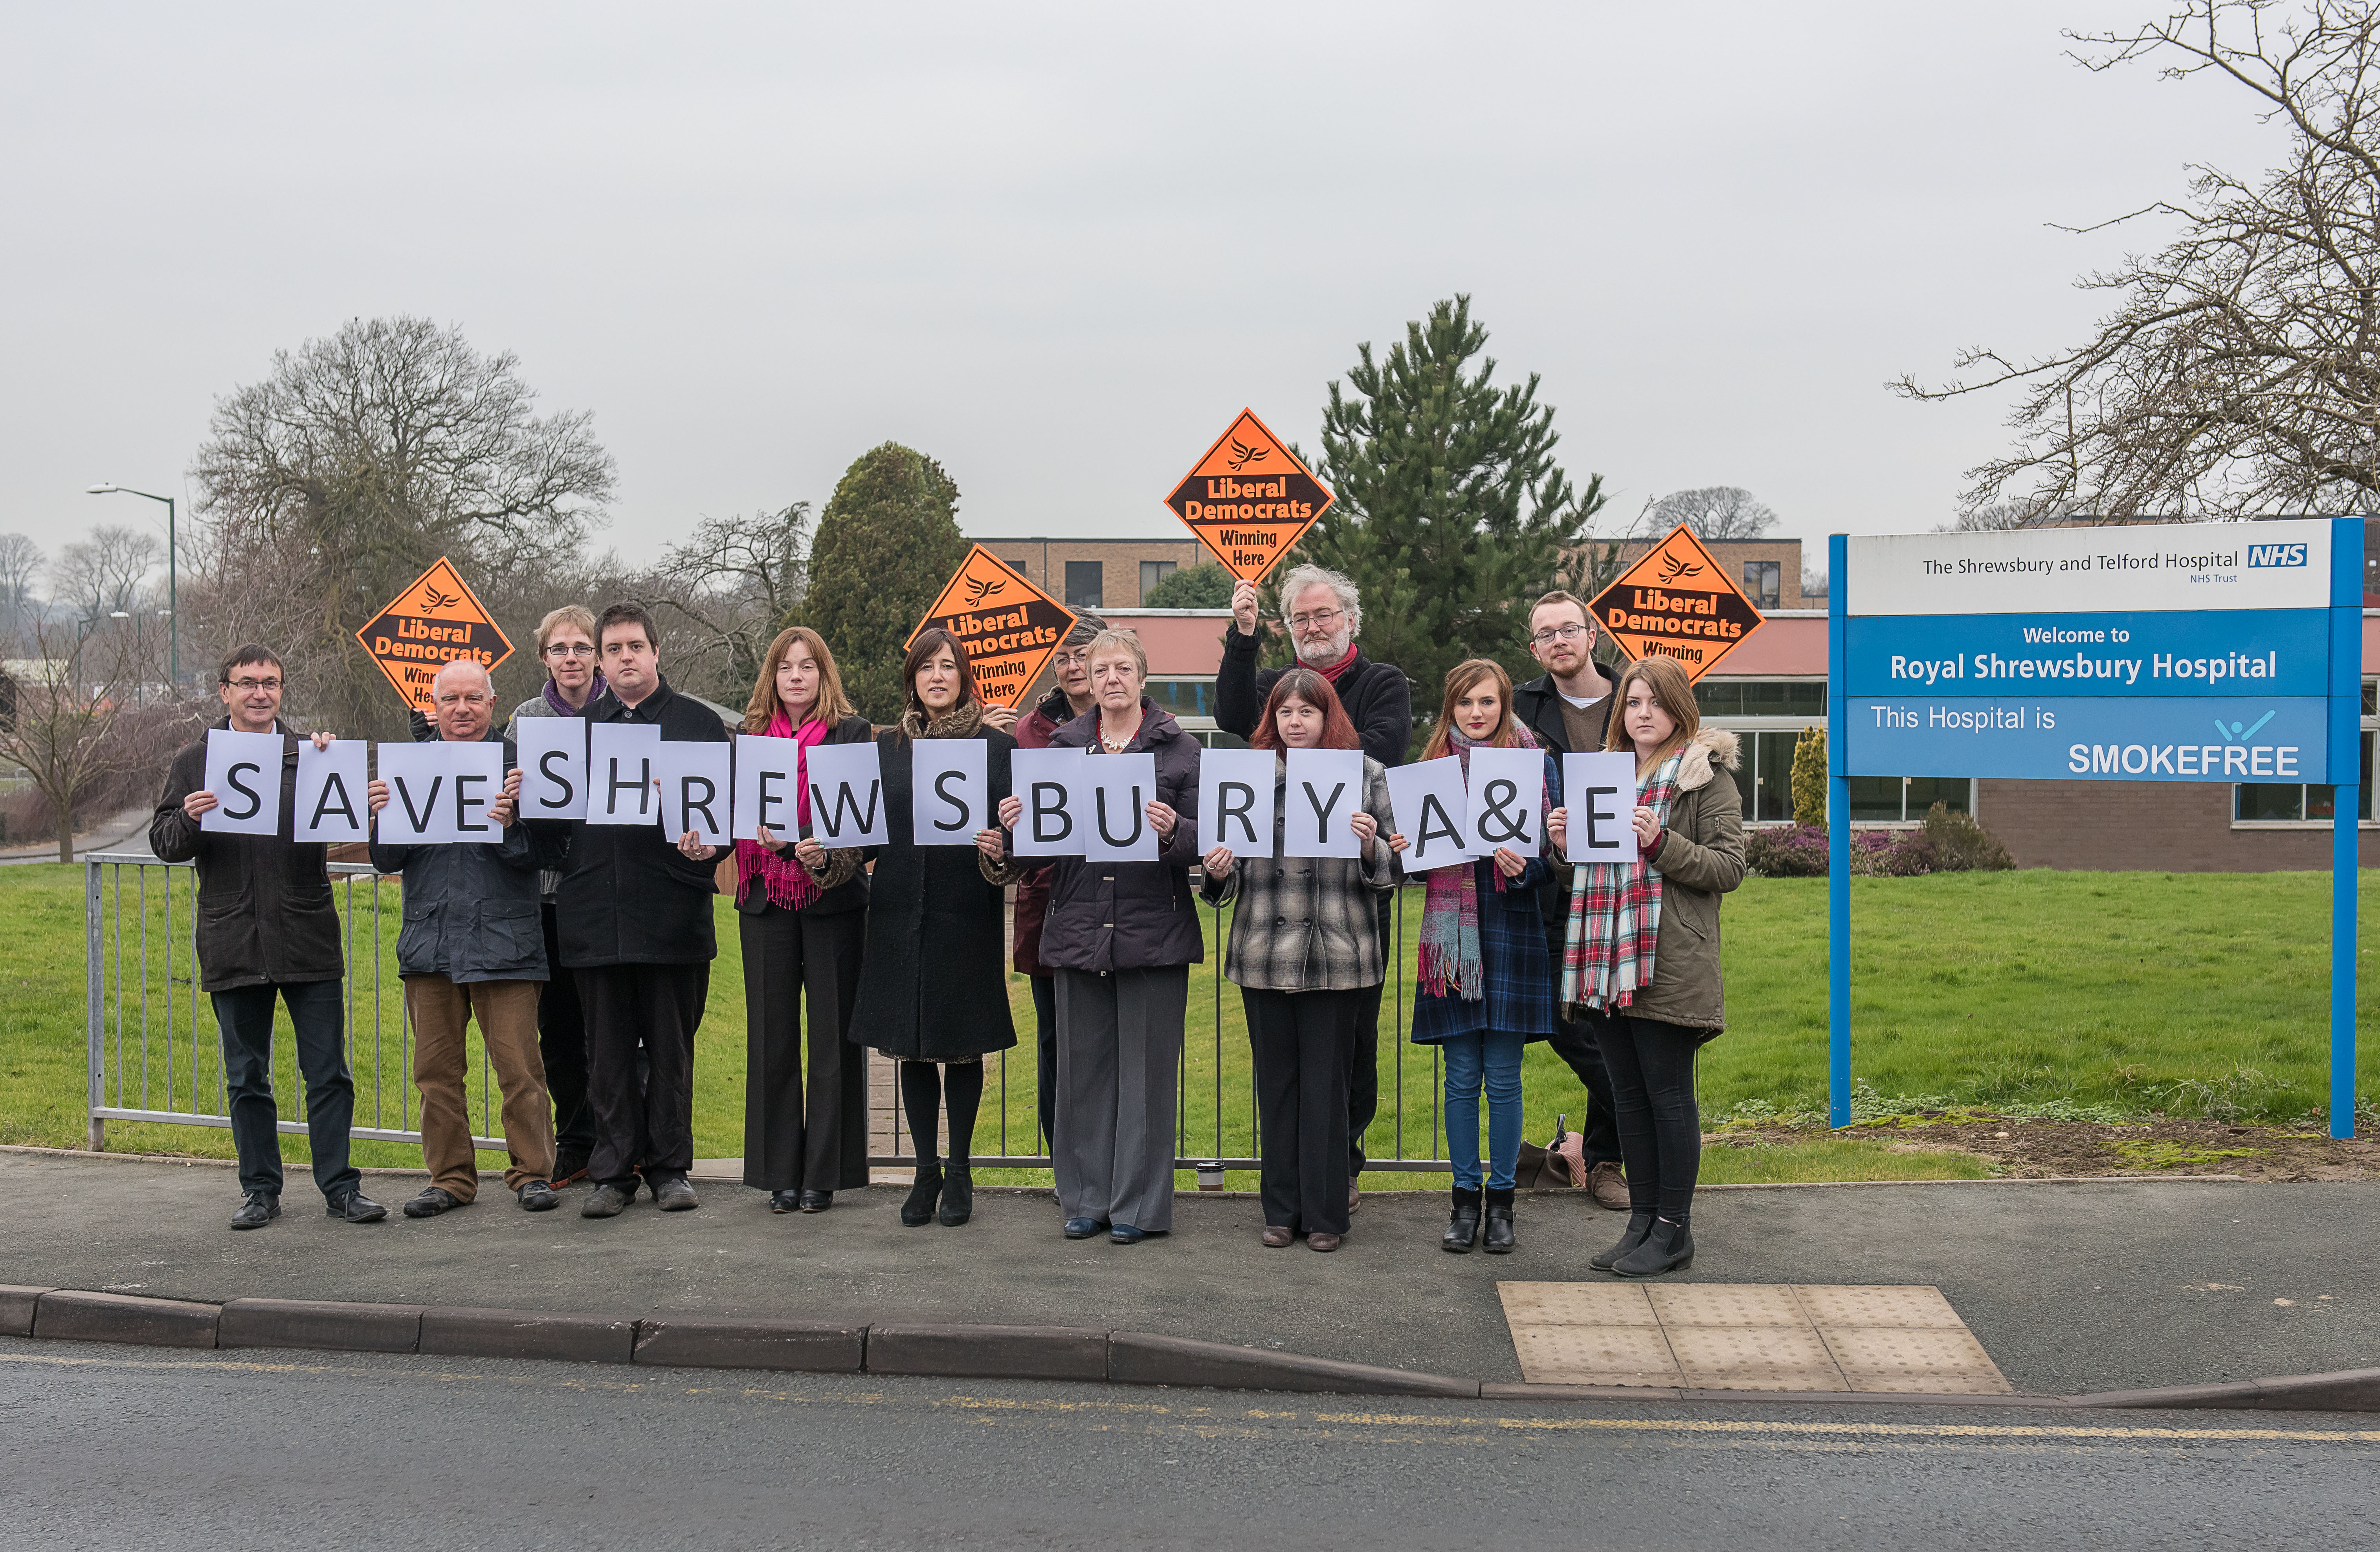 Save Shrewsbury A&E